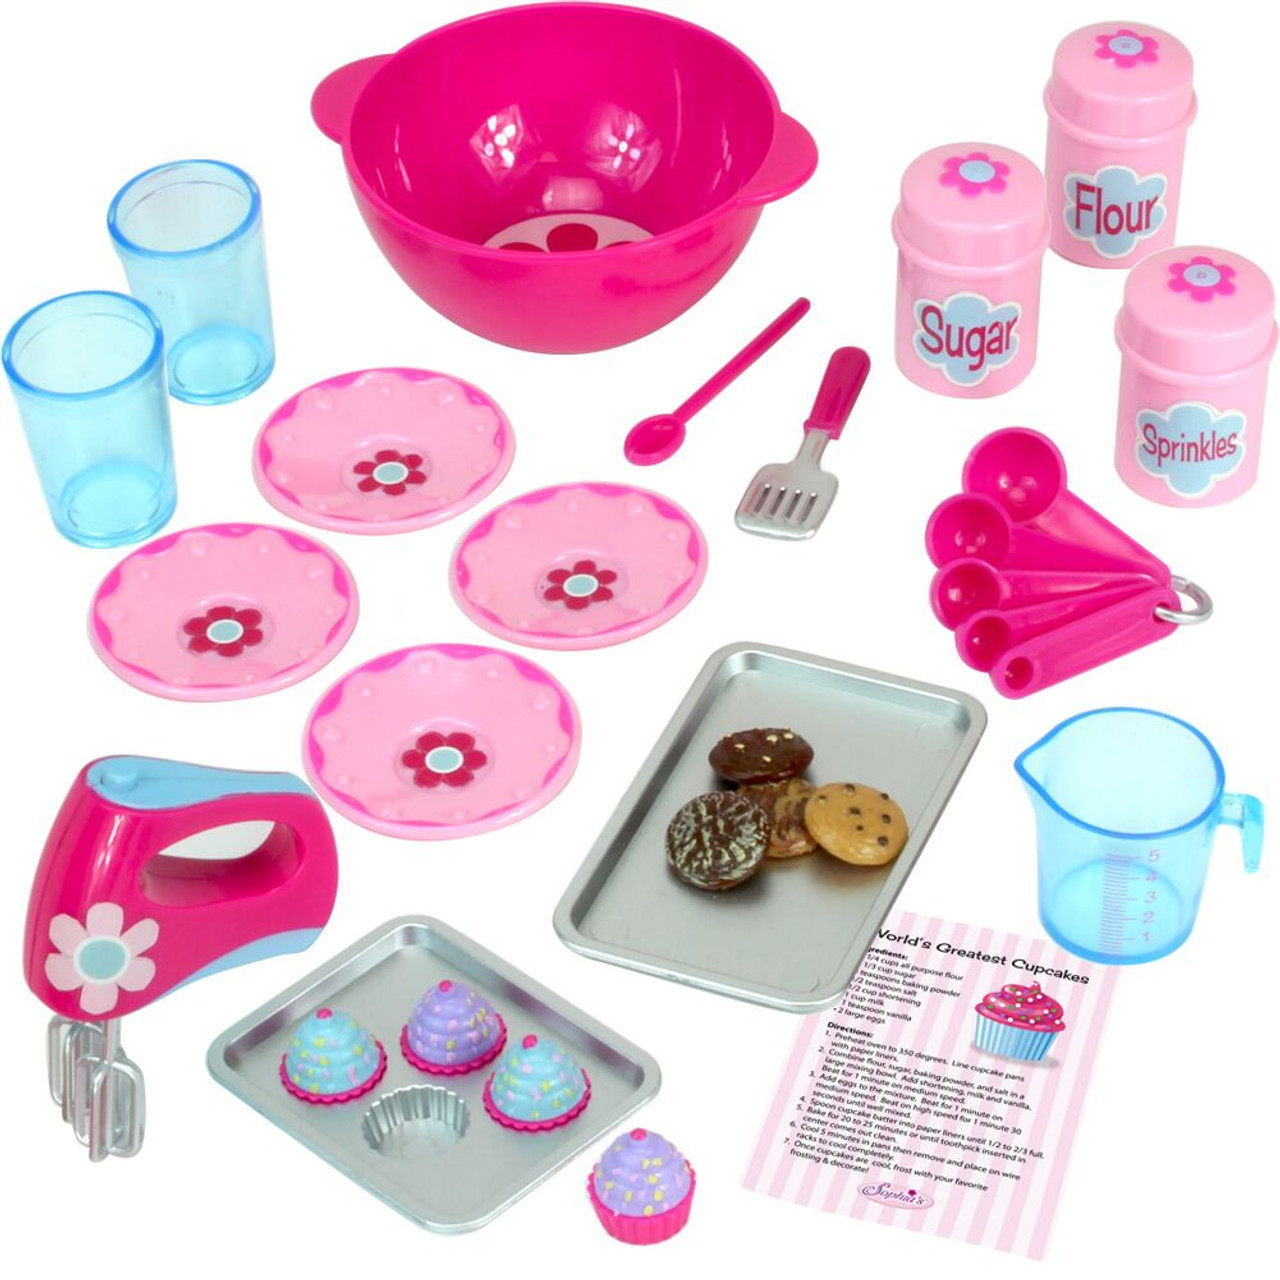 Baking Accessories Set For 18 Quot Dolls In Decorative Window